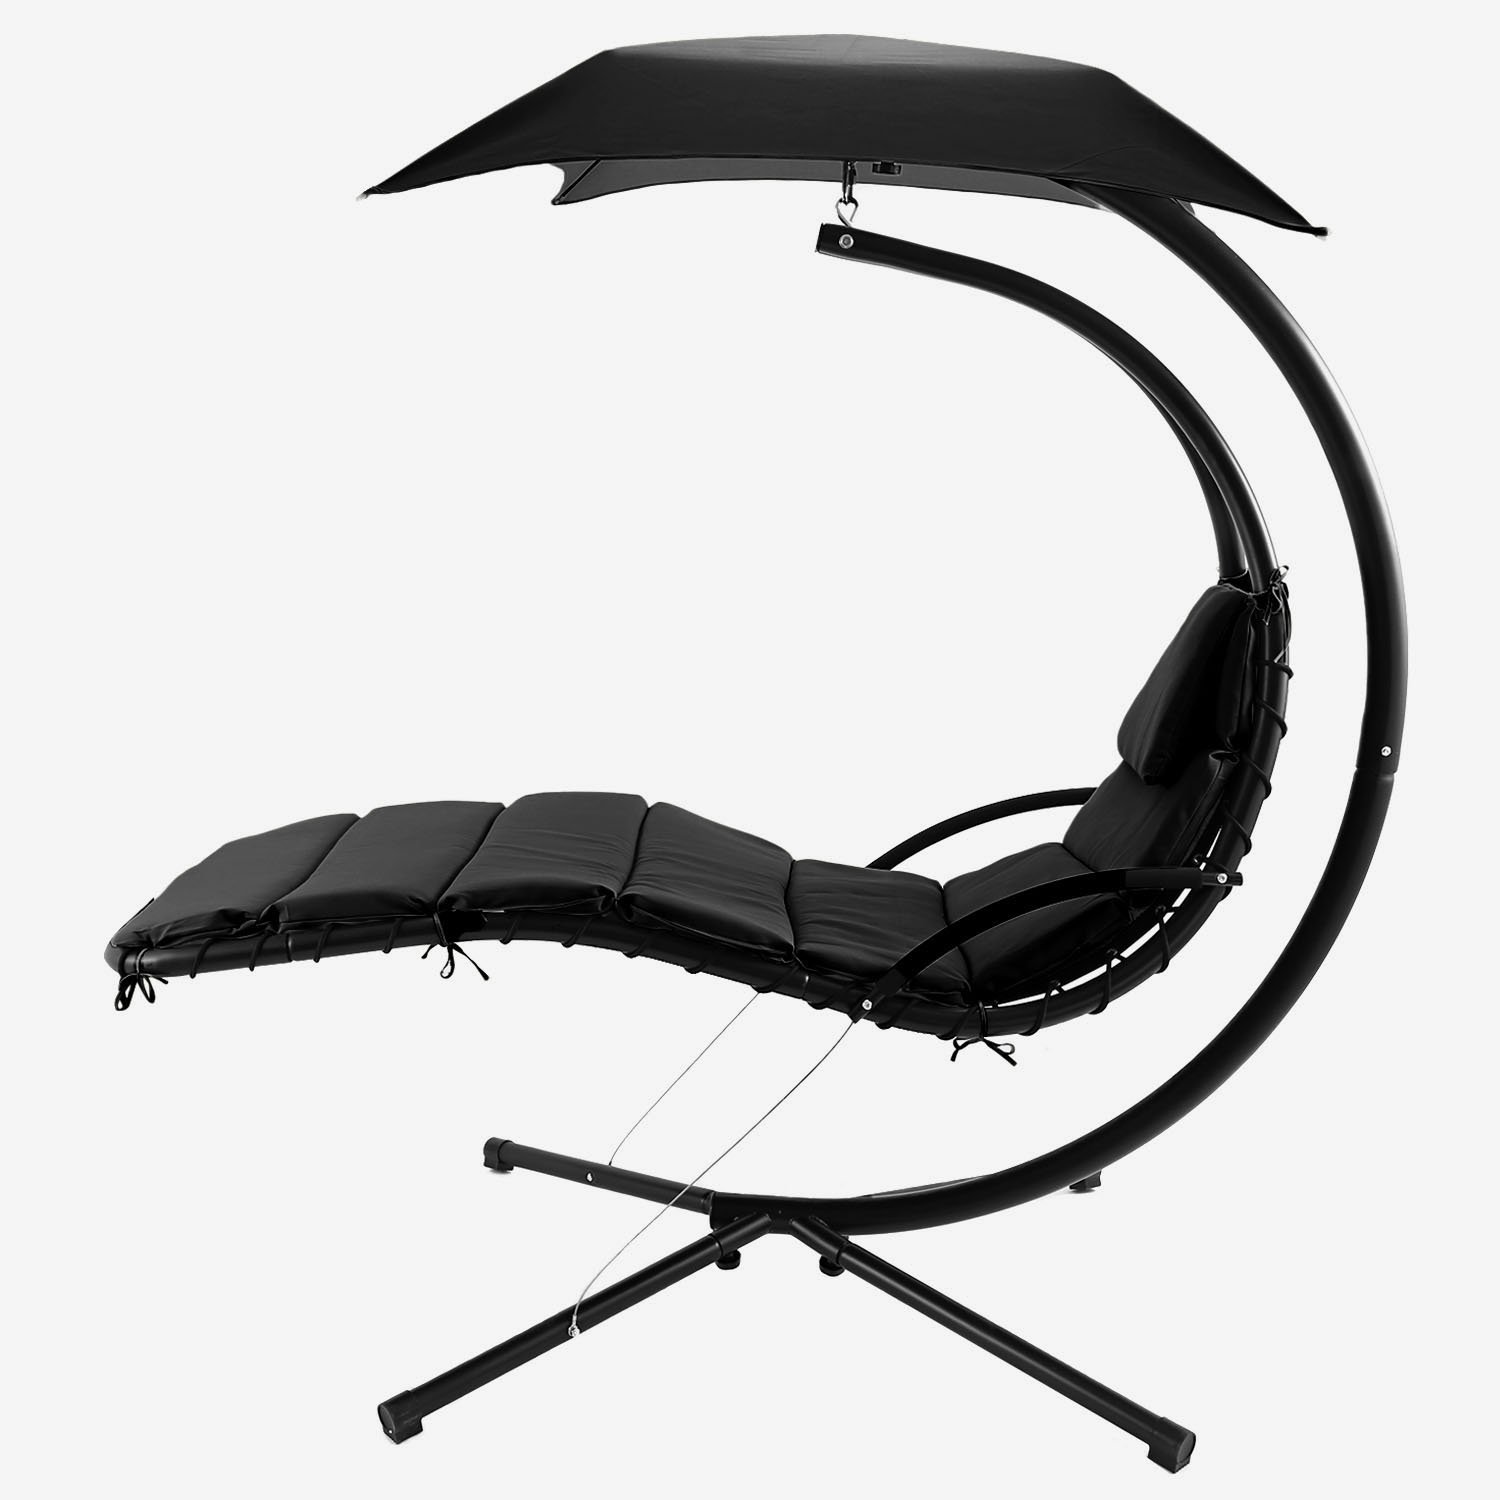 Vansop Hanging Chaise Lounger Chair Arc Stand Air Porch Swing Hammock with Canopy, 350lbs Max Weight Capacity US Stock Black